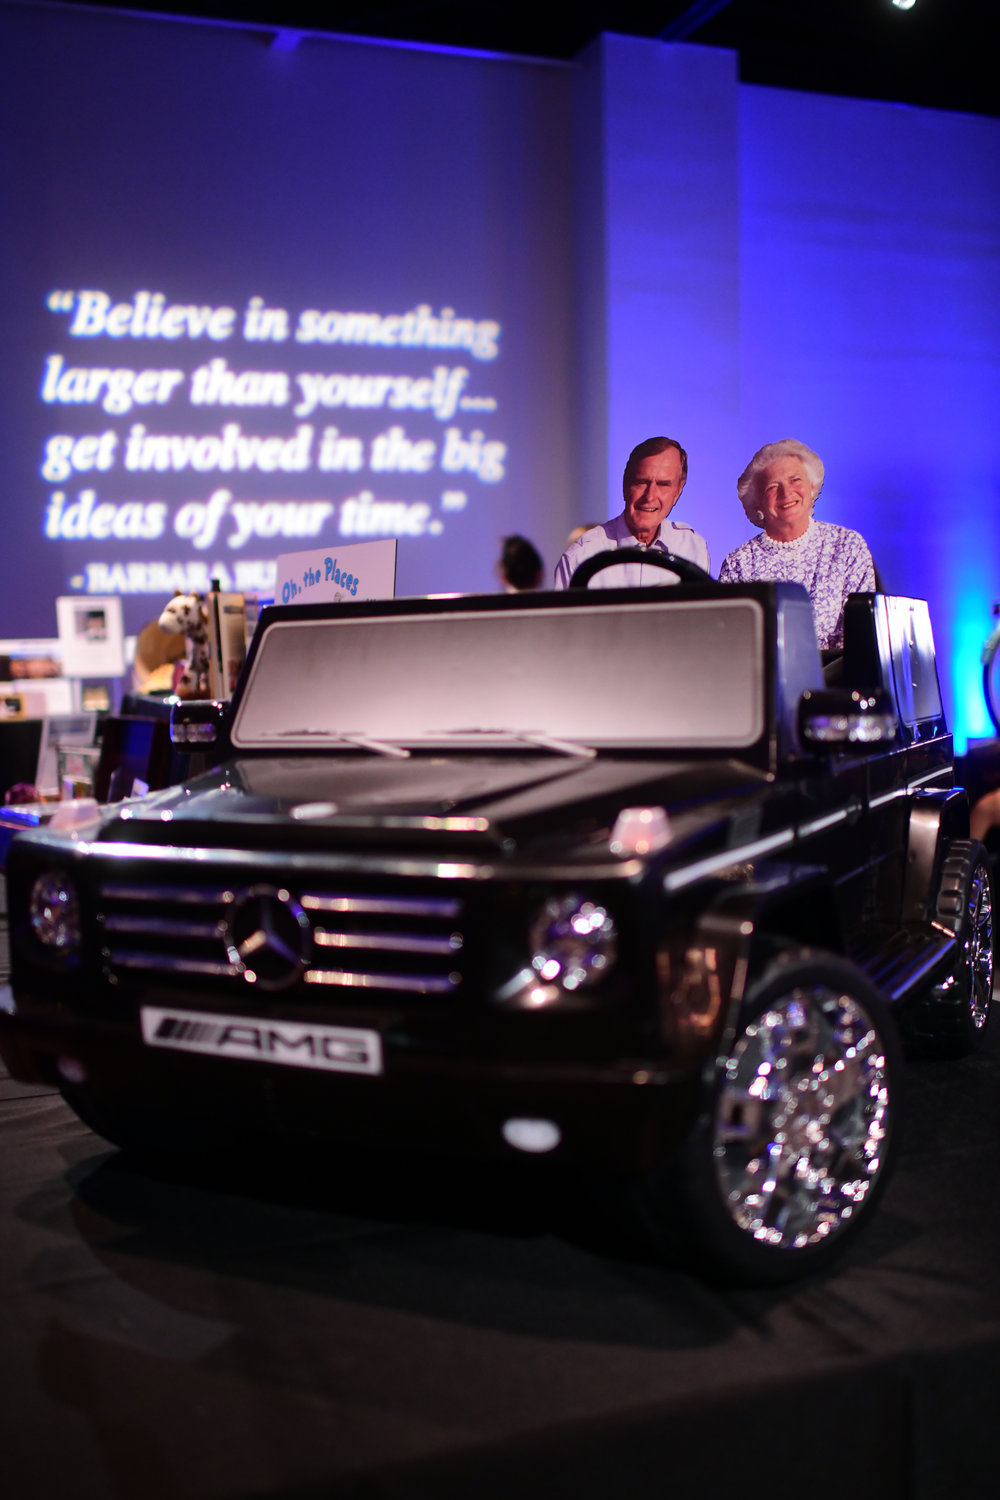 Mercedes Kid's Car in the Silent Auction Featuring George H W and Barbara Bush in the Back Seat; Photo by Daniel Ortiz.jpg